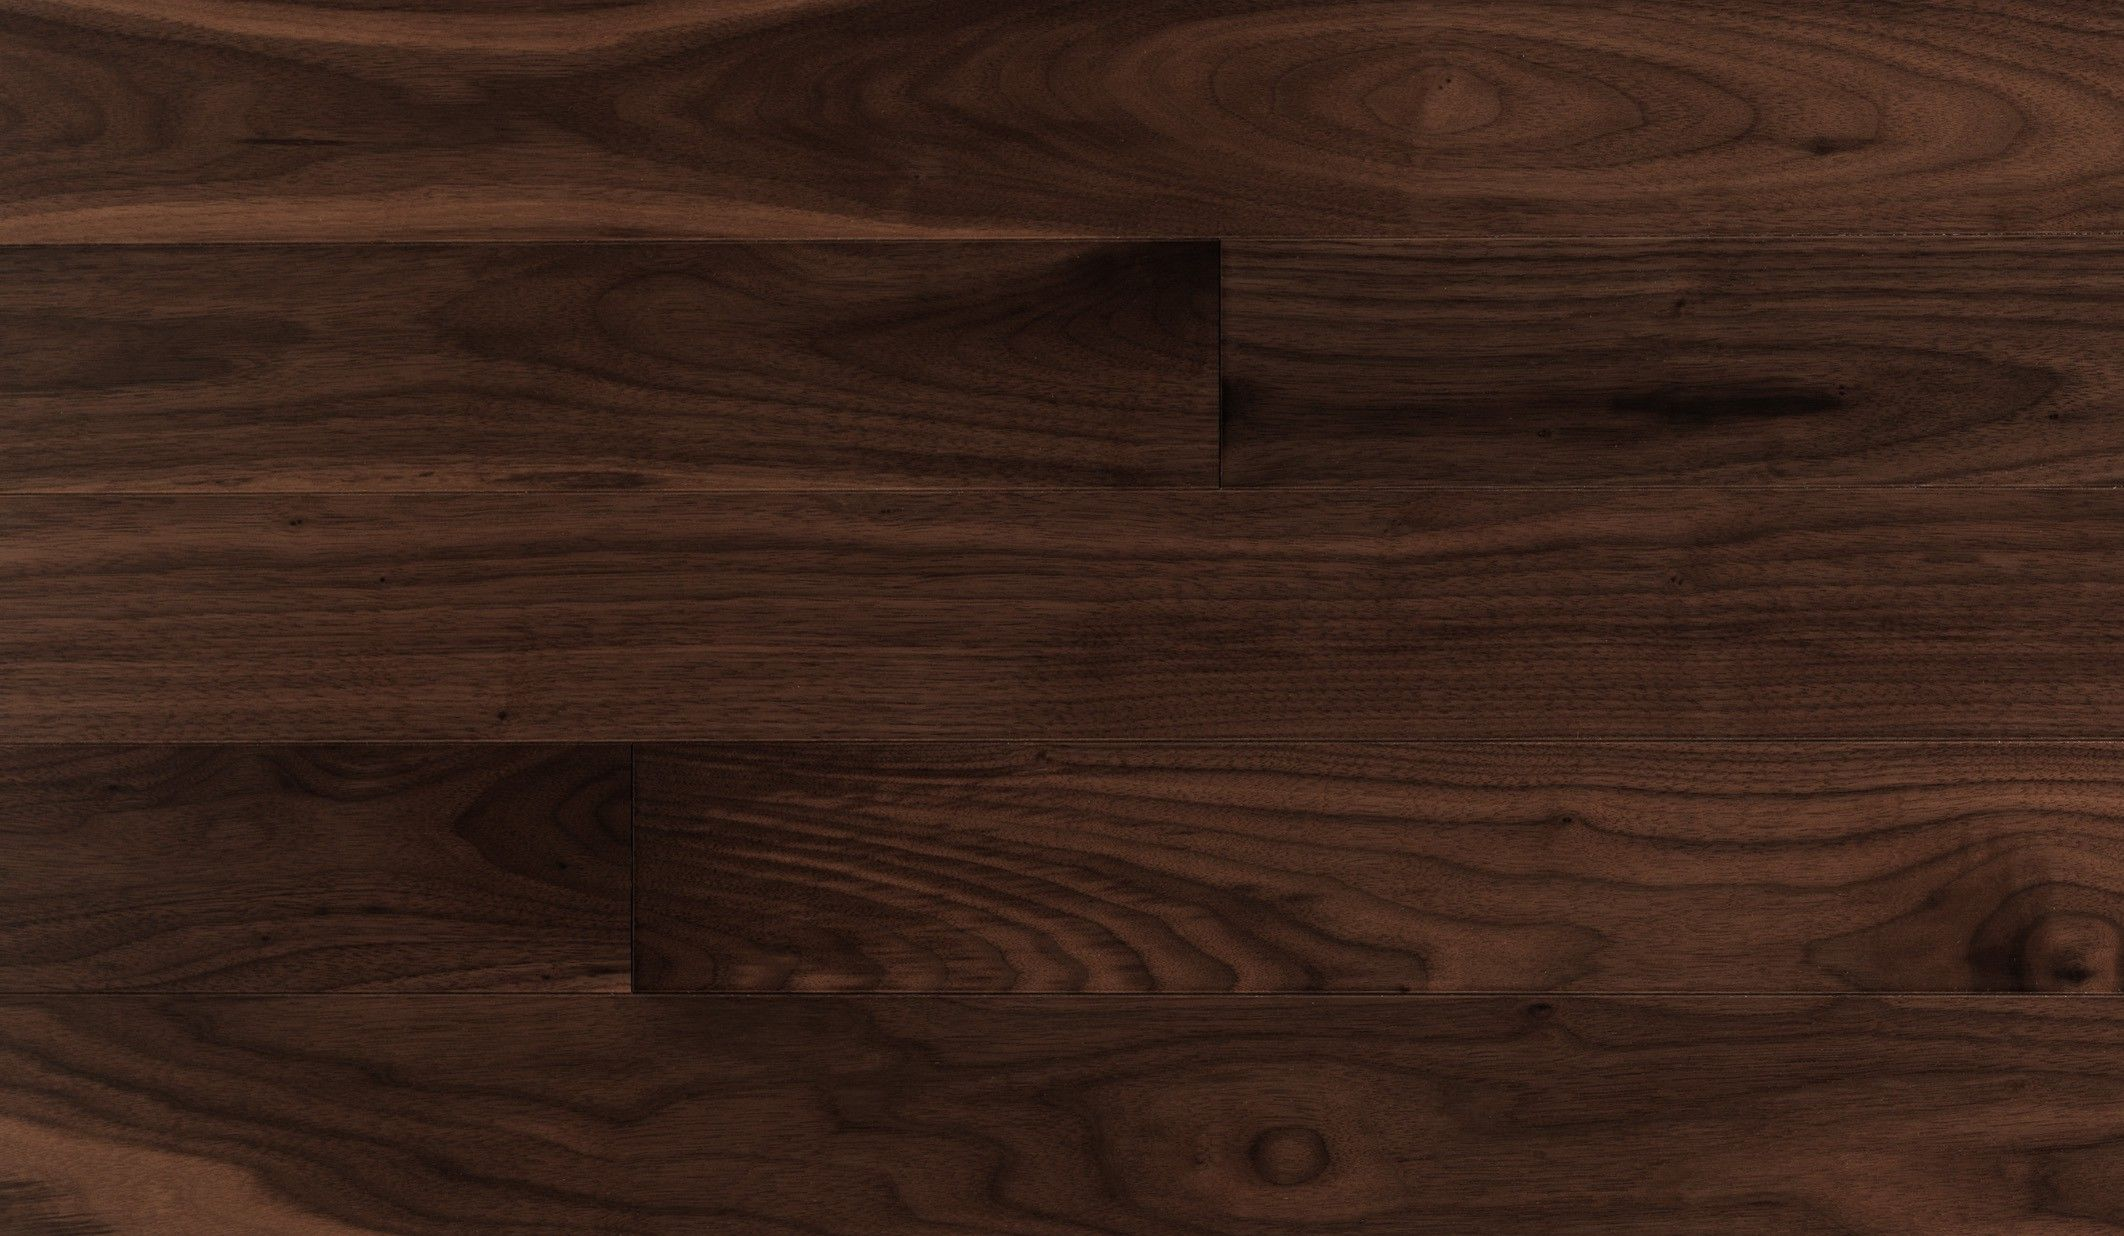 Black walnut wood texture google search map g for Wood floor map